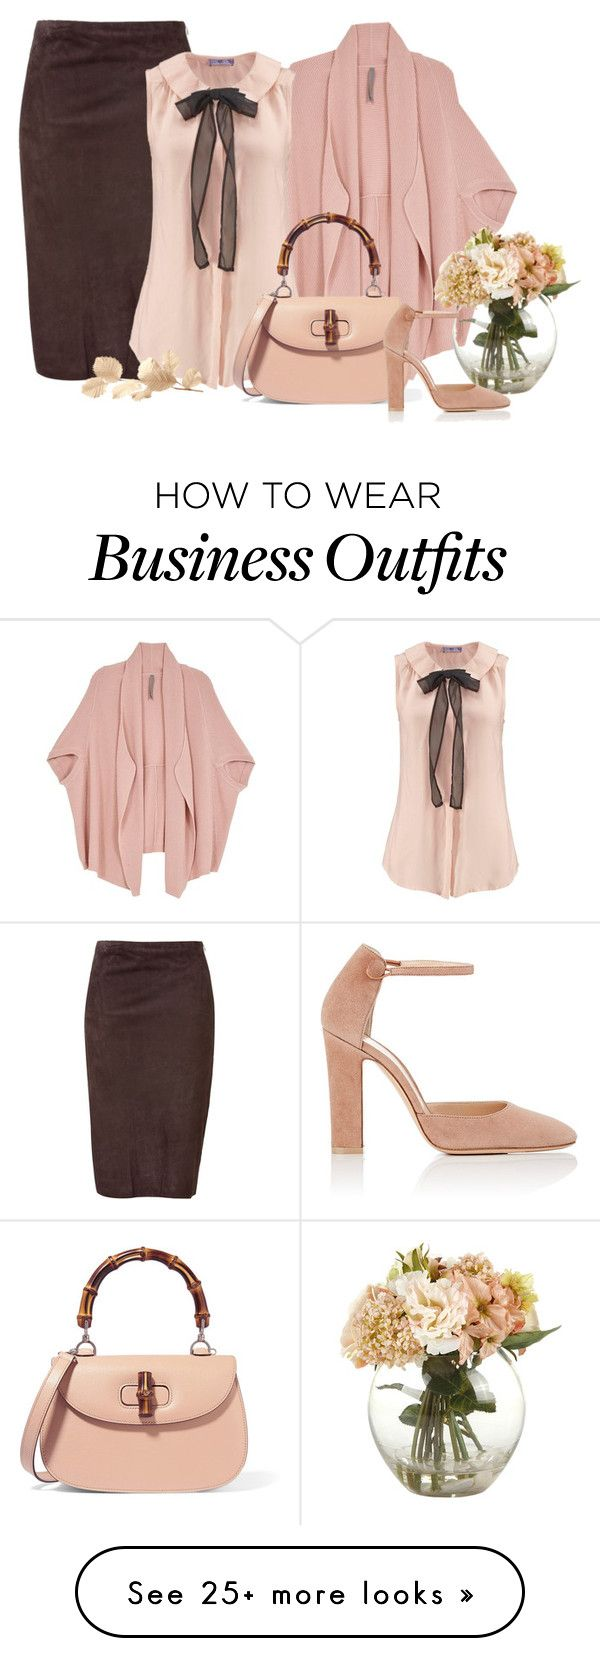 """peach work wear"" by rvazquez on Polyvore featuring Ralph Lauren Black Label, Melissa McCarthy Seven7, Gucci, Gianvito Rossi and plus size clothing"